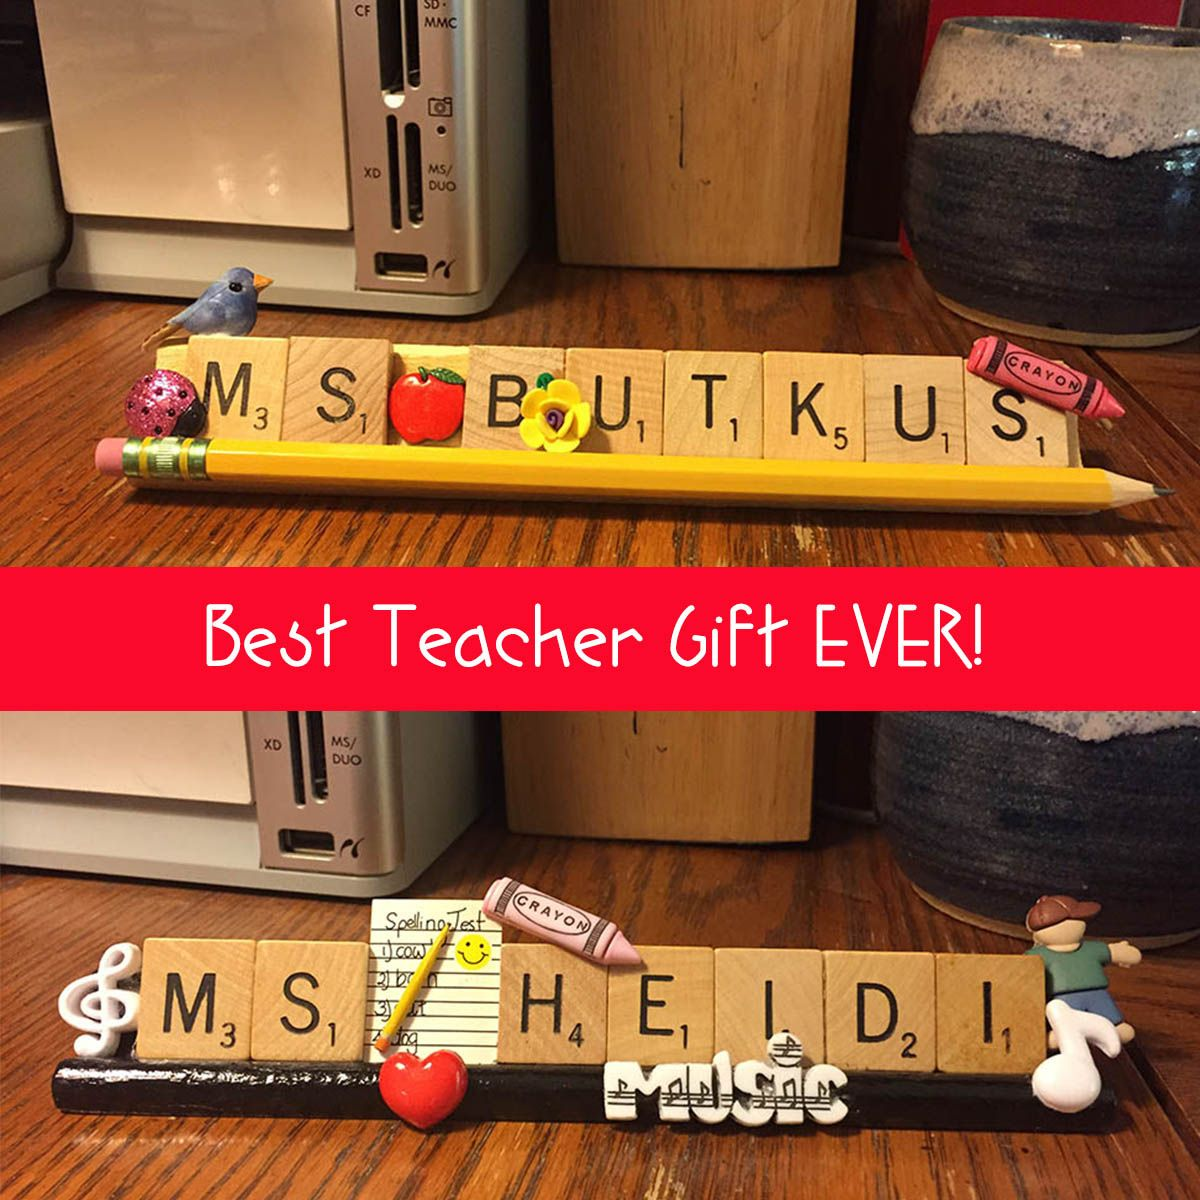 Personalized Name Plate for Office, Home, Teacher, Boss, Gift Using Scrabble Letter Tiles and Stands